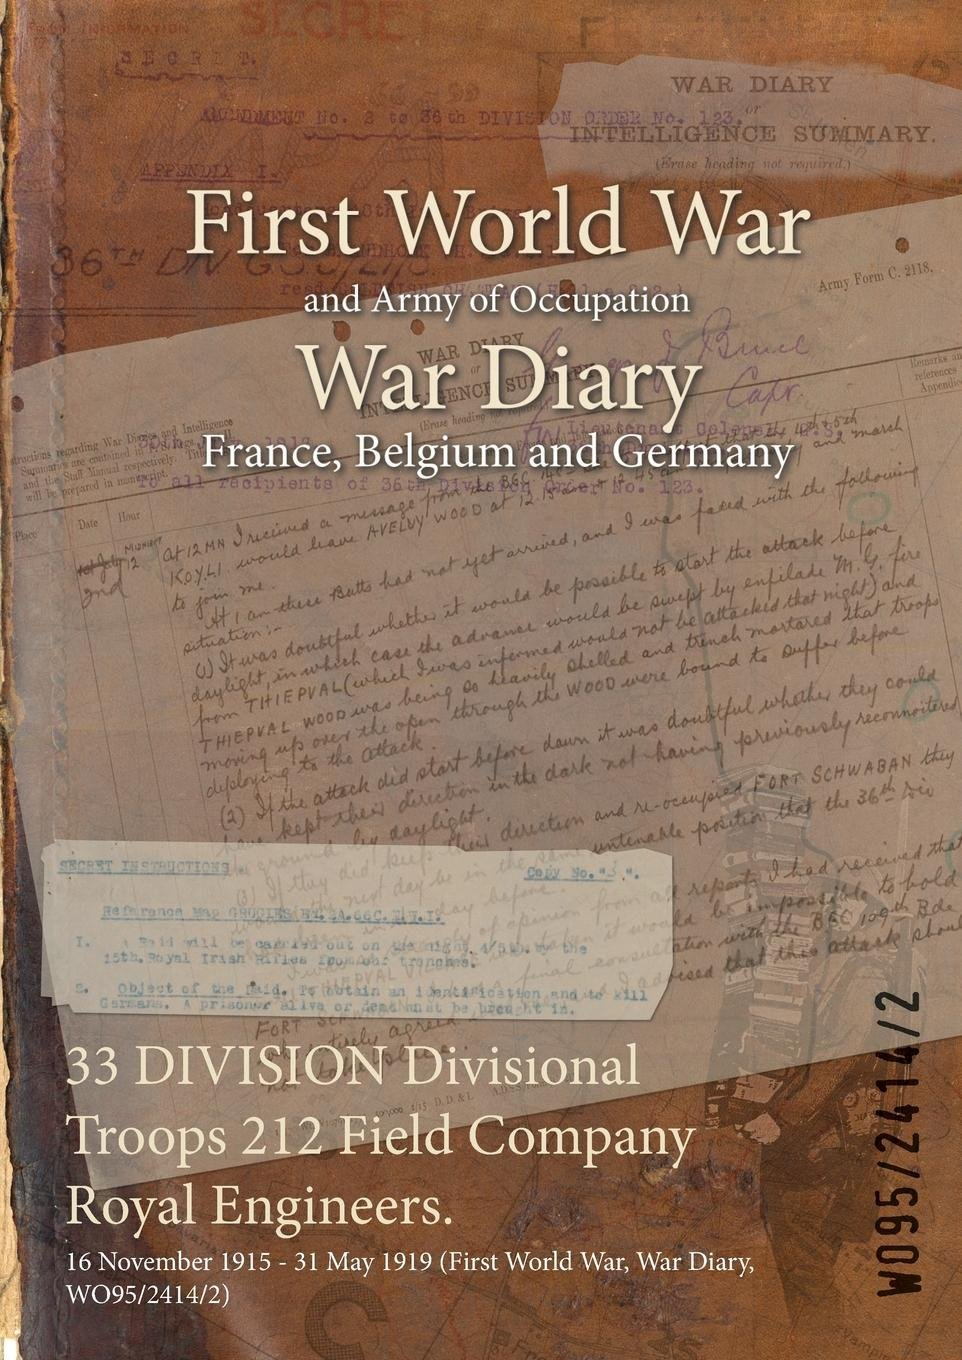 Read Online 33 Division Divisional Troops 212 Field Company Royal Engineers.: 16 November 1915 - 31 May 1919 (First World War, War Diary, Wo95/2414/2) PDF